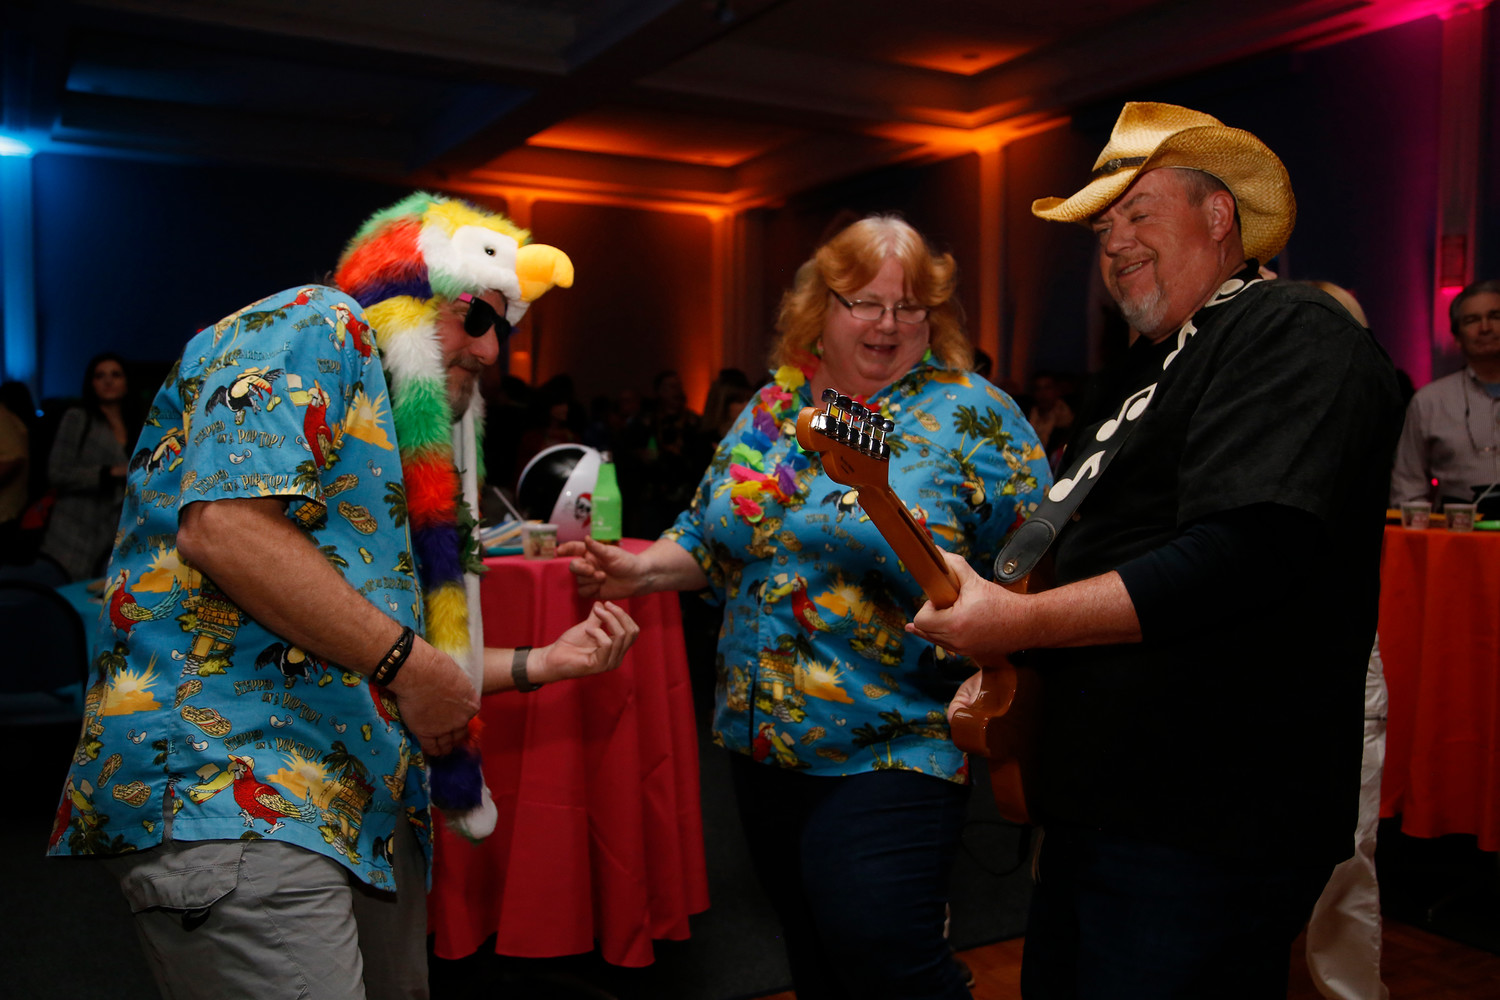 Thomas and Loretta Pfeiffer danced to tunes by Jimmy and the Parrots at St. Agnes Parish Center last Saturday.